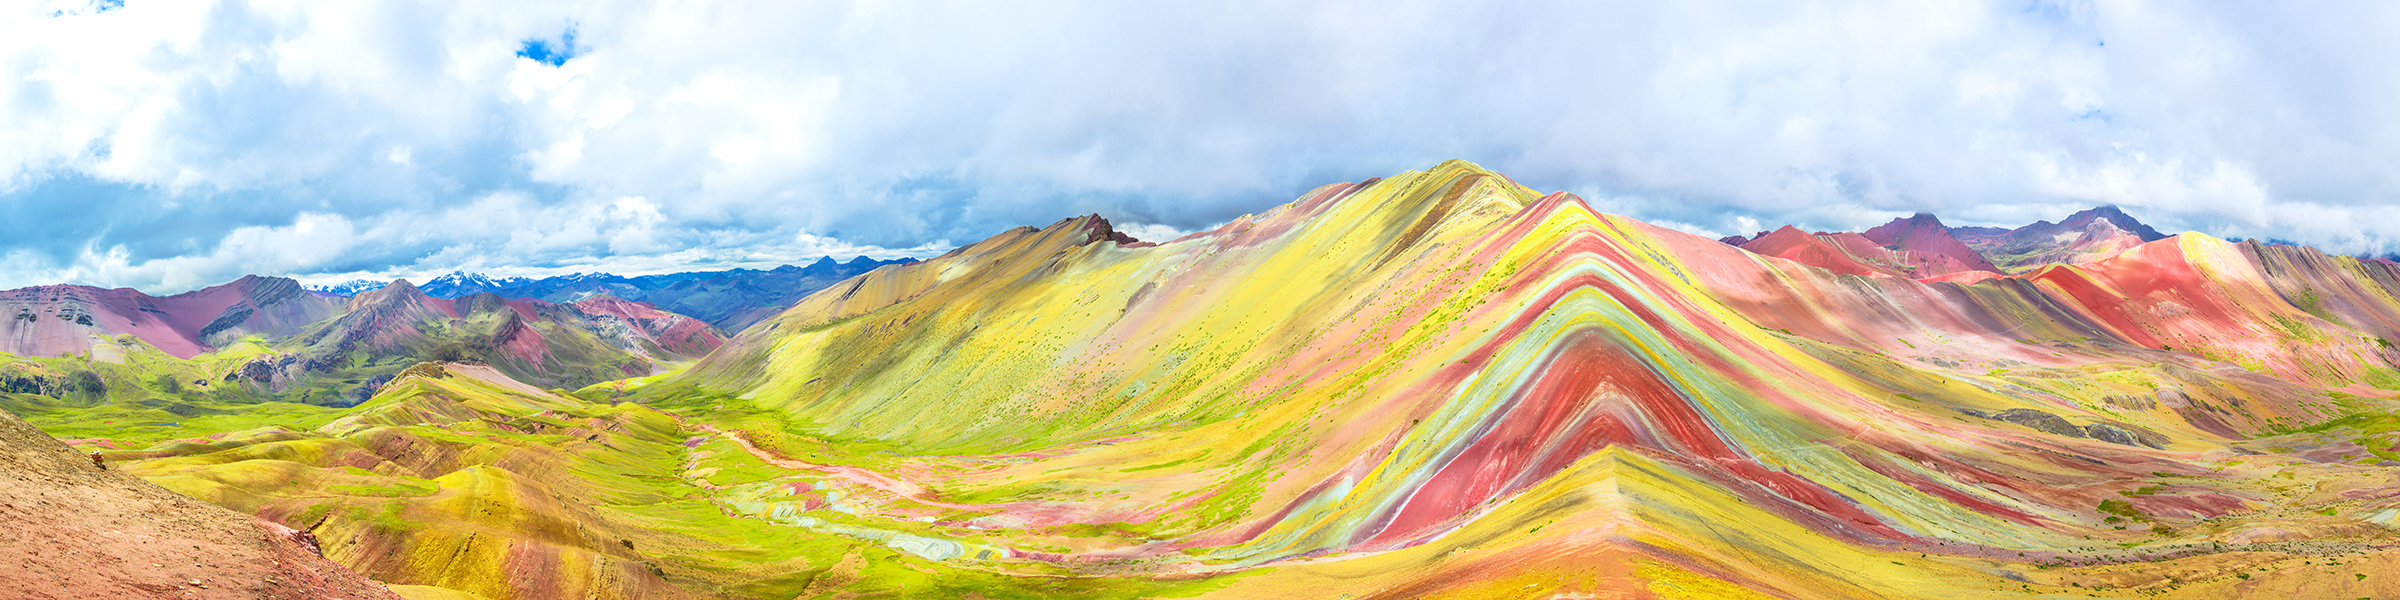 Peru Vinicunca Rainbow Mountain